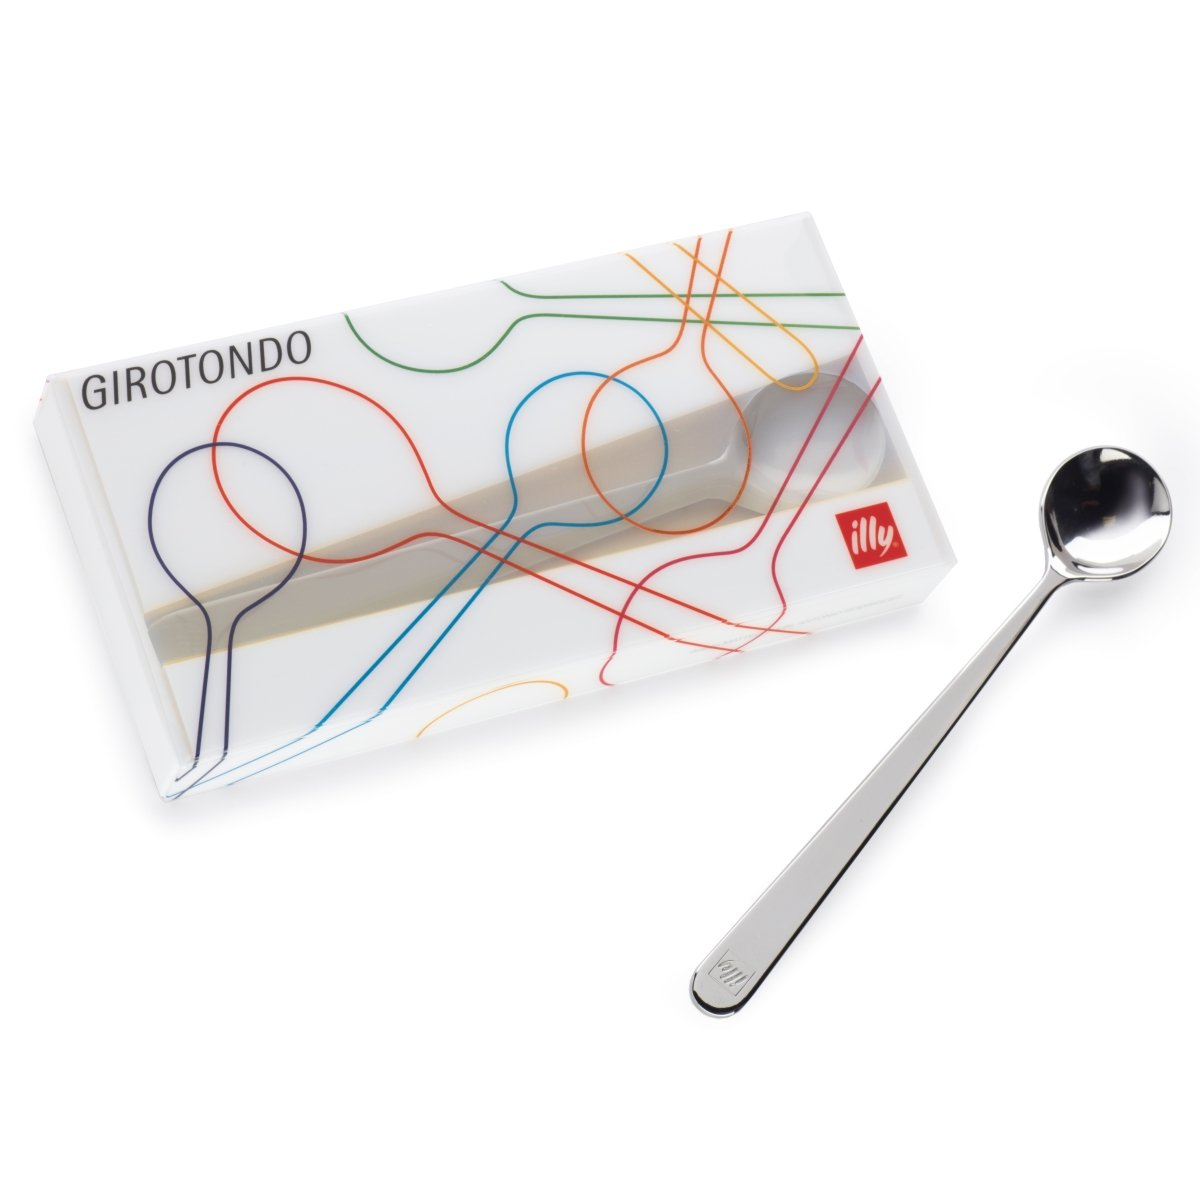 Illy 6 cucharillas Café largo de 160 mm Girotondo by Matteo Thun ...